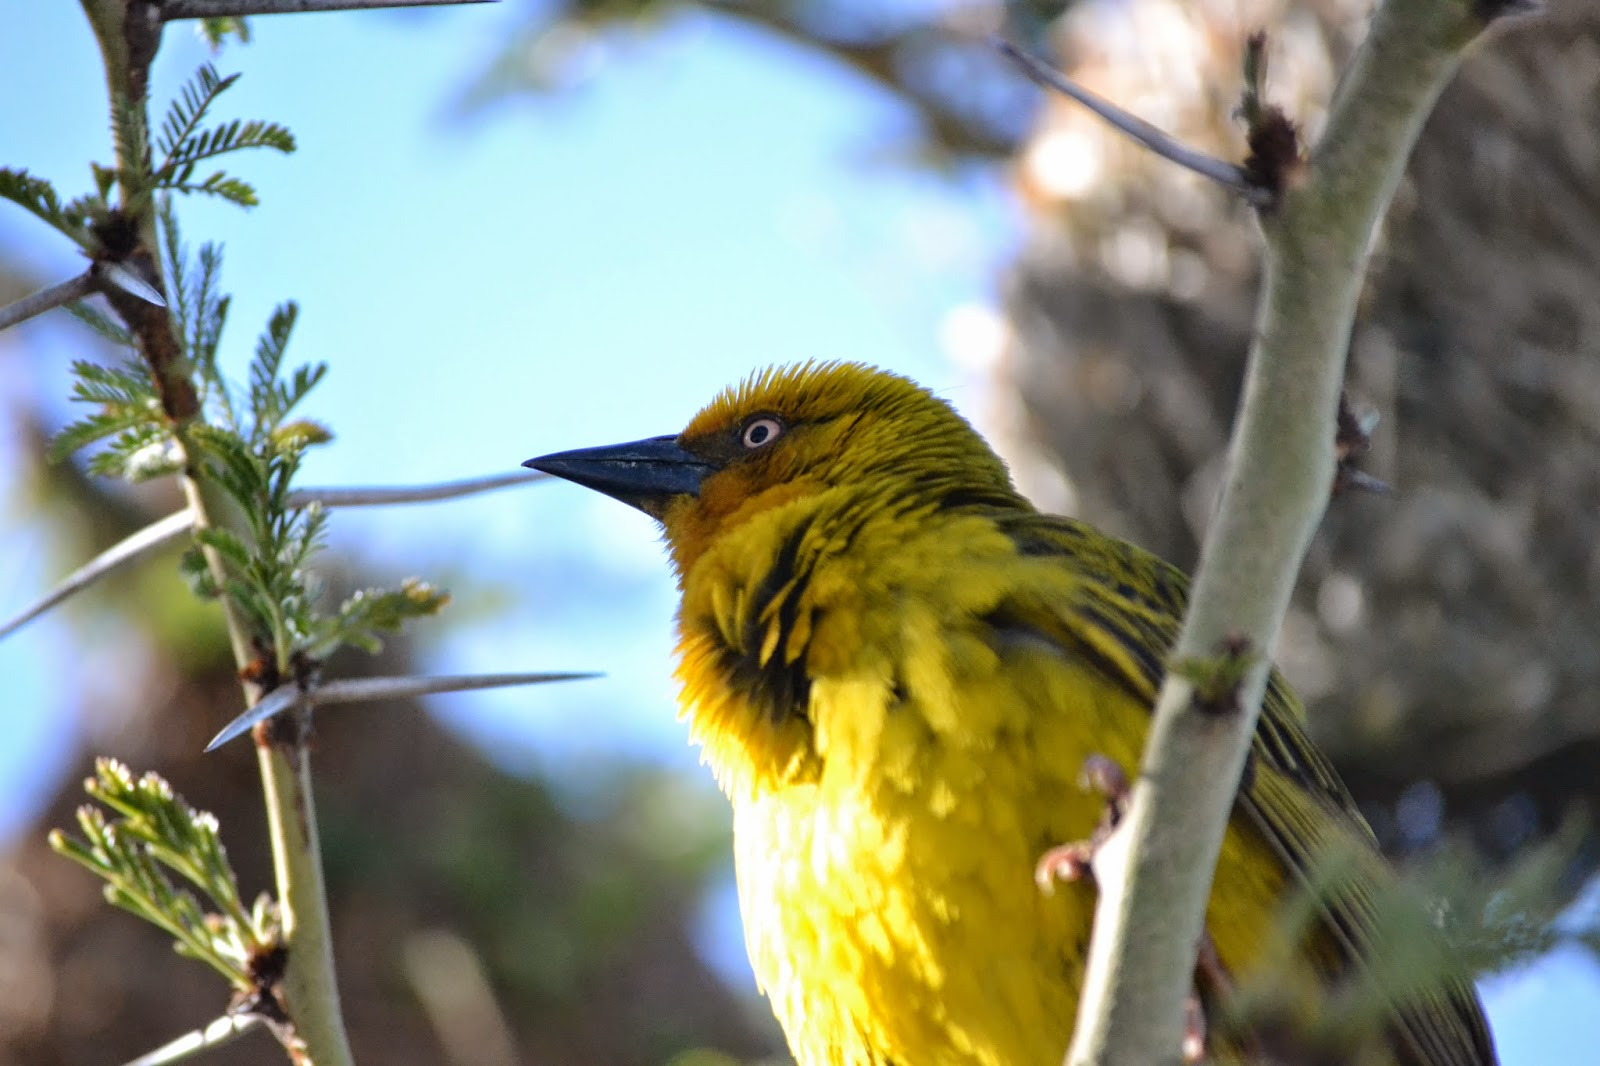 Cape Weaver view from below